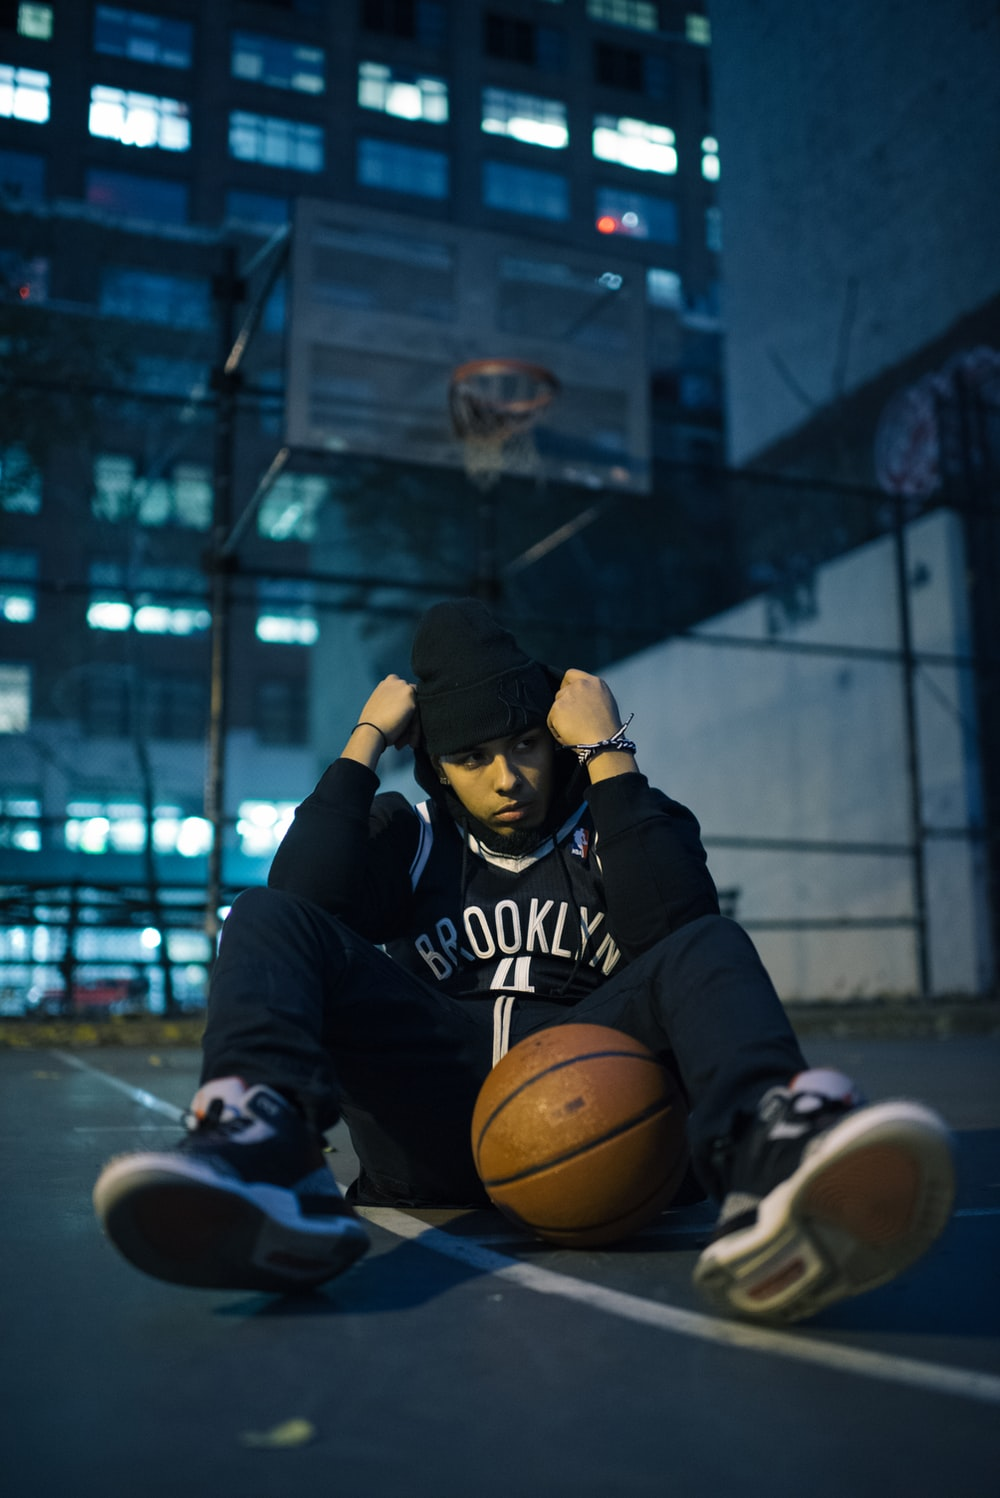 man sitting on basketball court